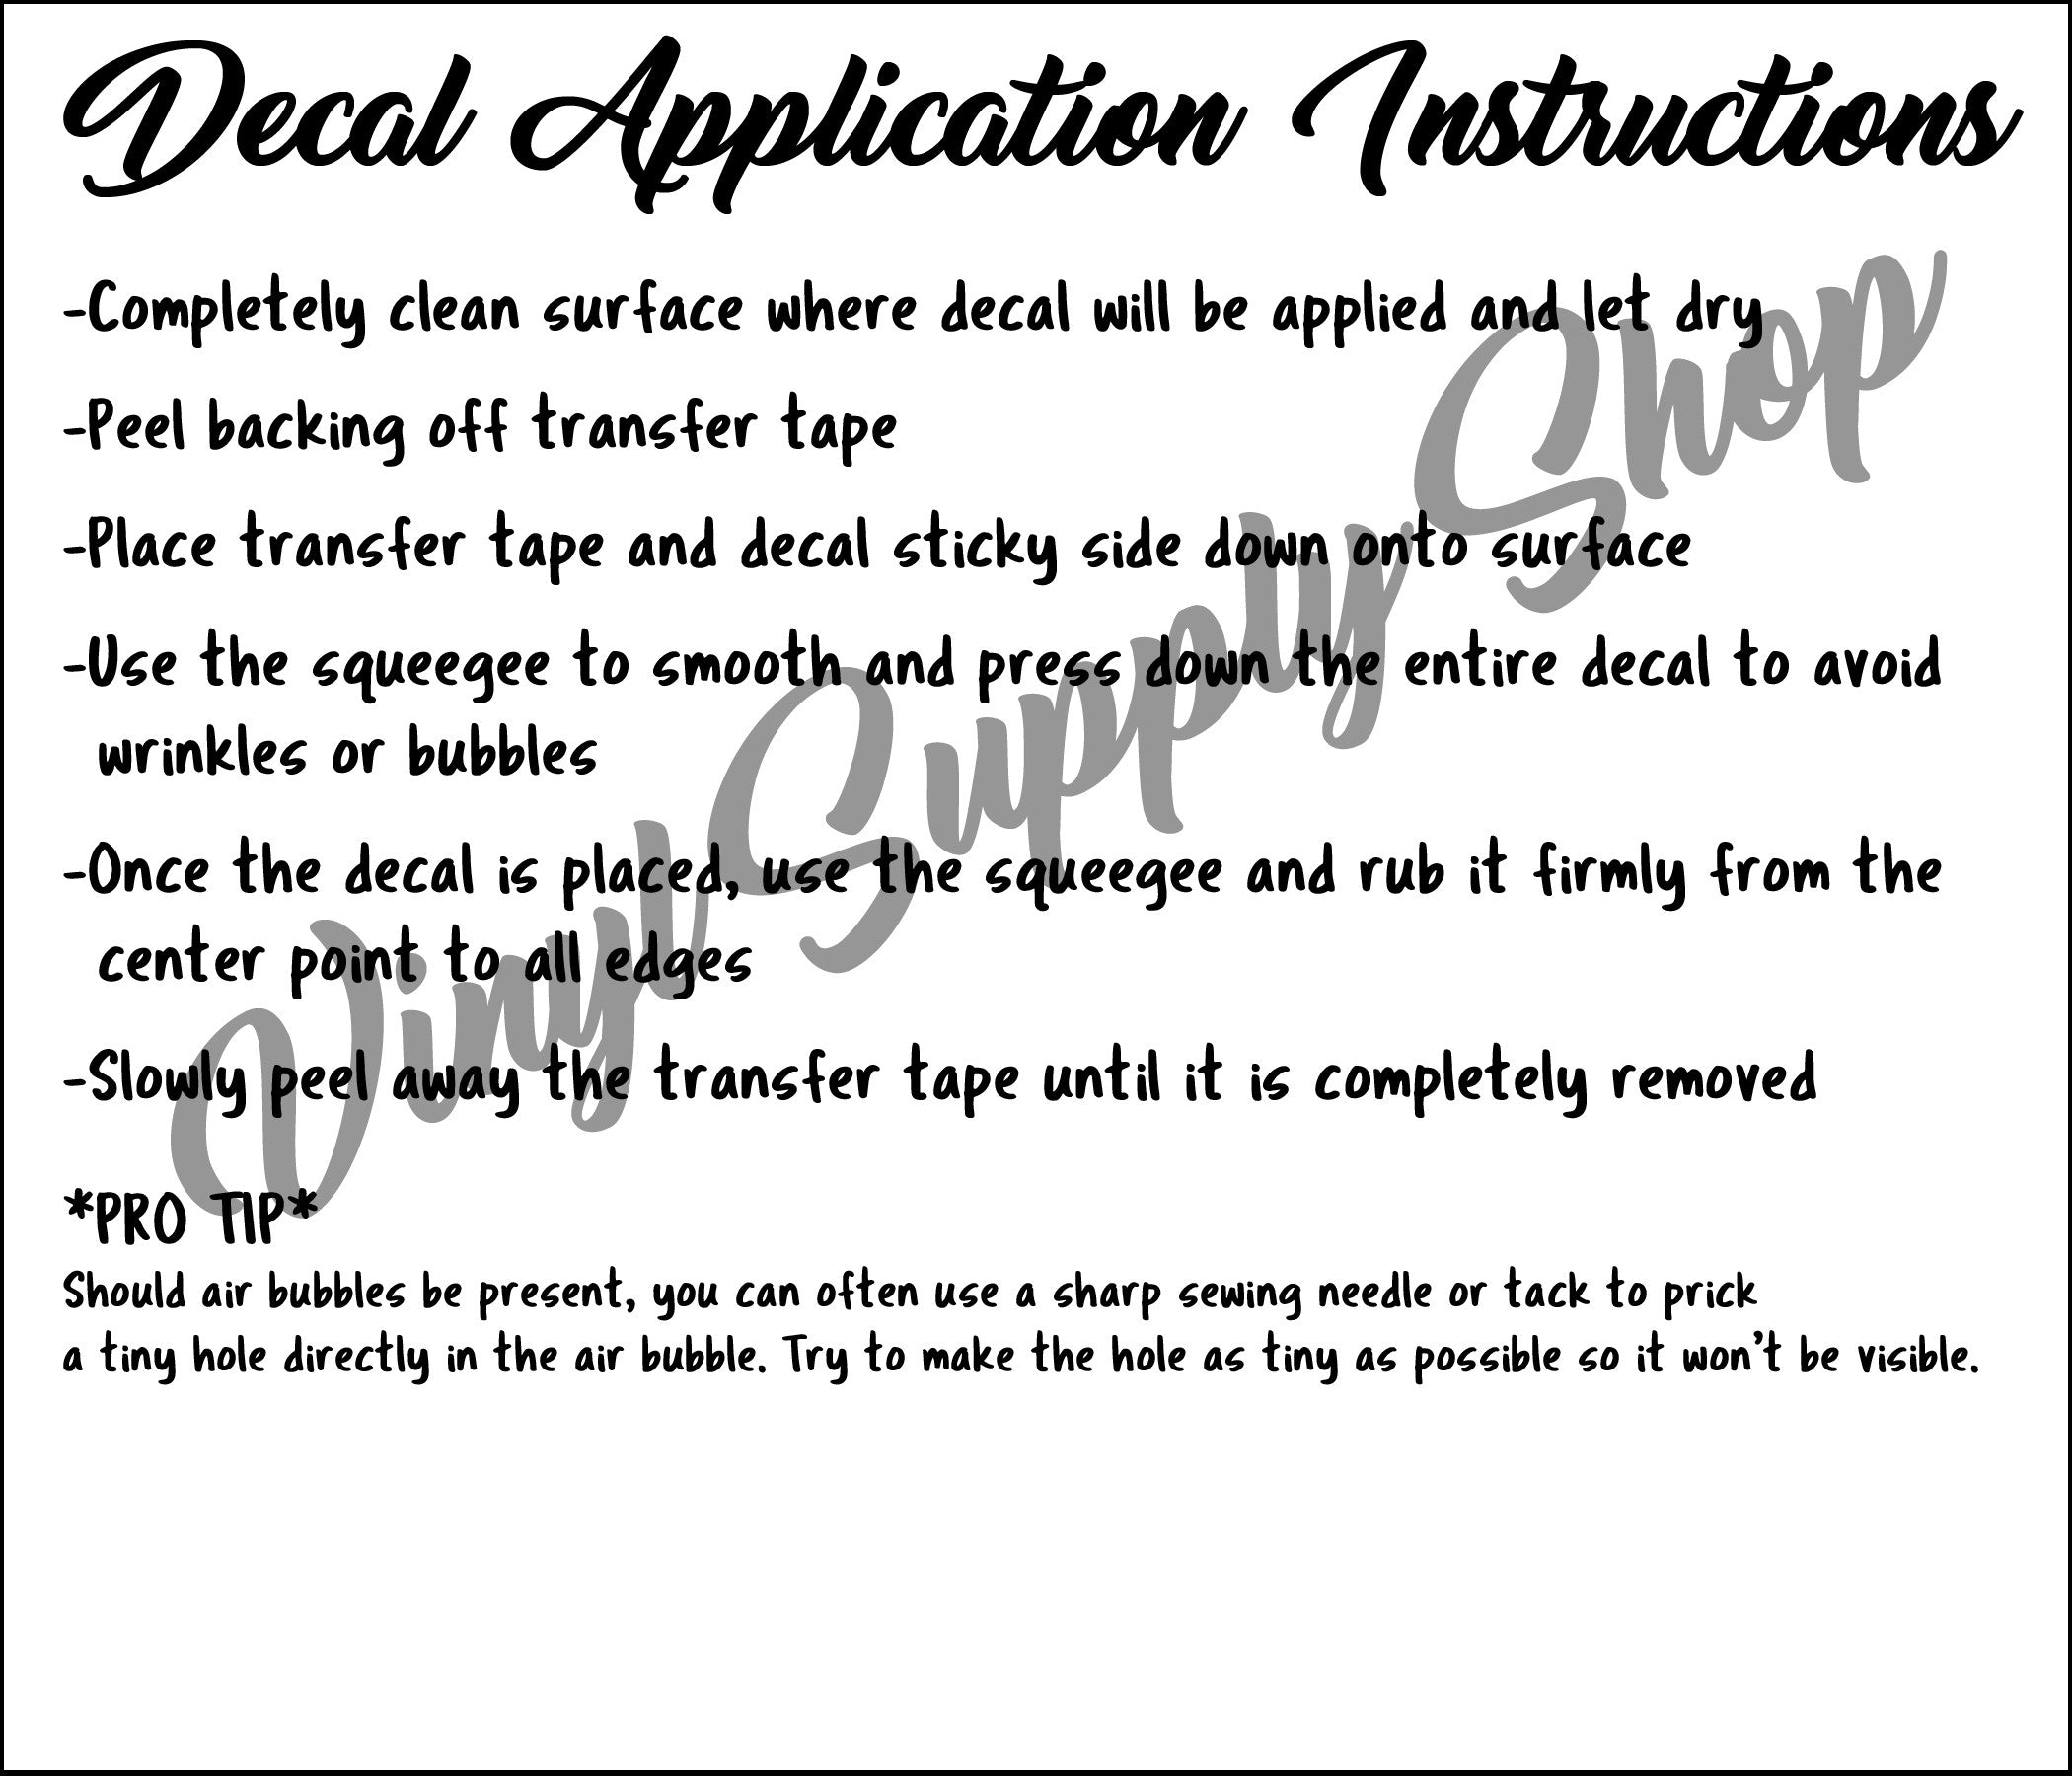 photo about Decal Application Instructions Printable named Include Your Place of work Standing Decal Program Guidance Straightforward